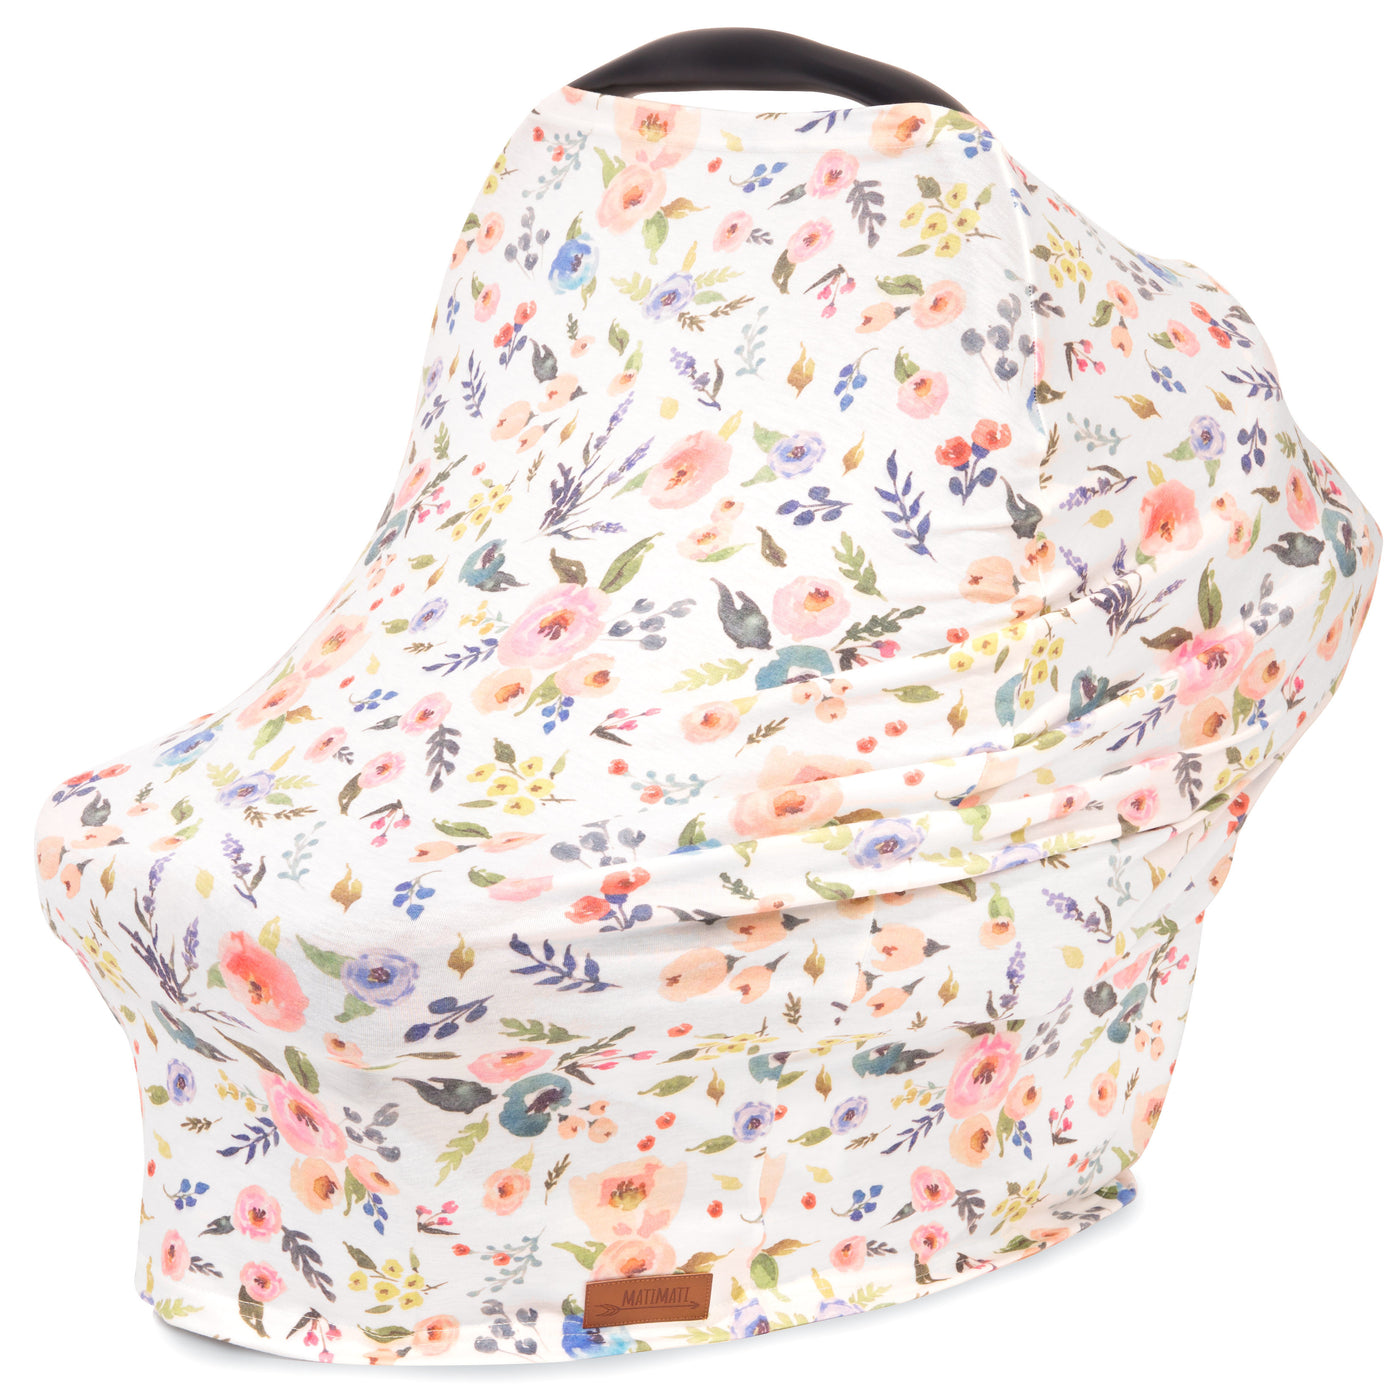 5-in-1 Carseat & Nursing Cover (Flora)